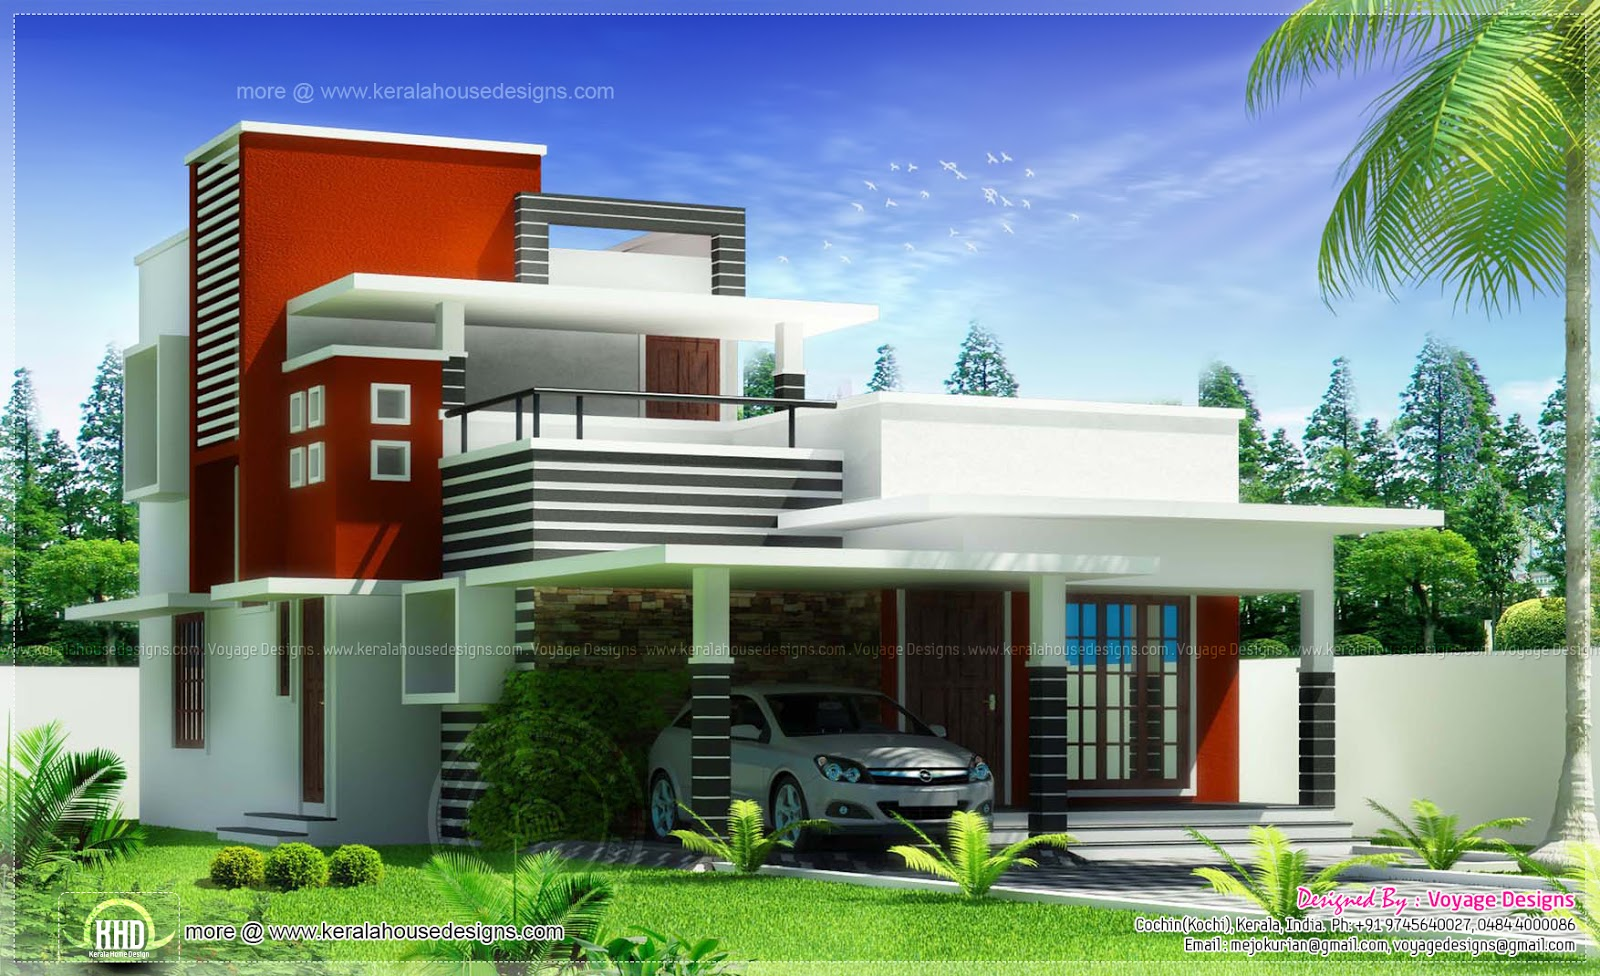 3 bed room contemporary style house home kerala plans for Modern looking houses